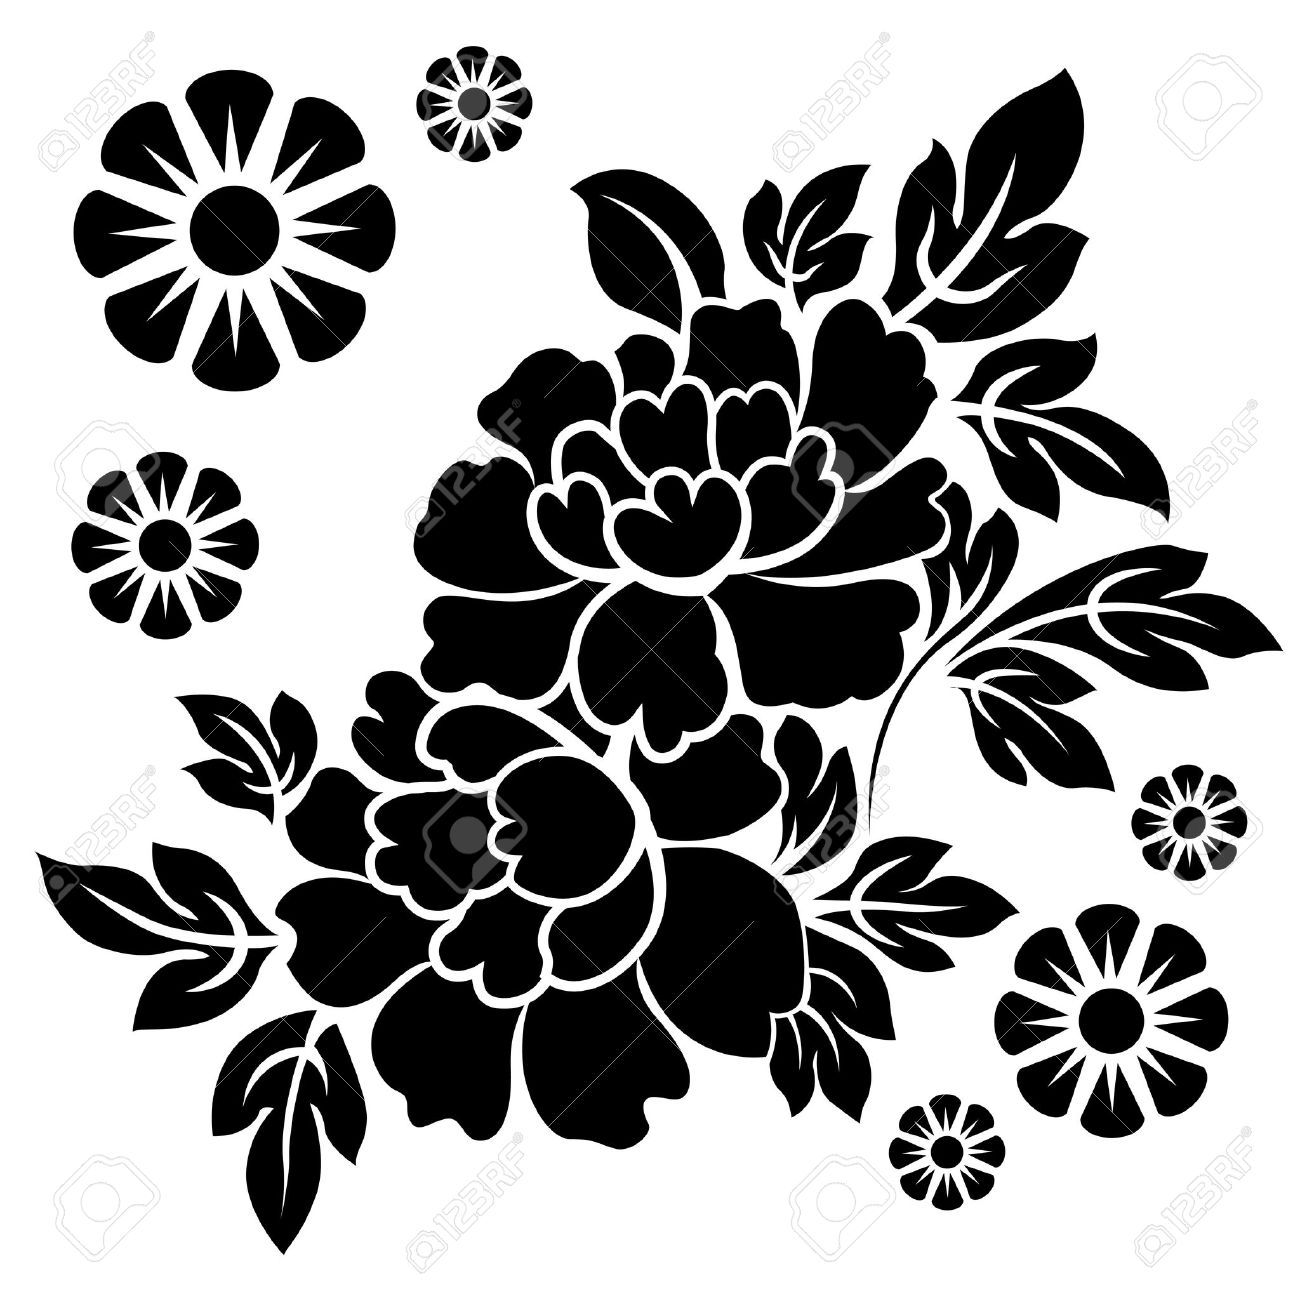 black silhouette of flowers vector illustration royalty free